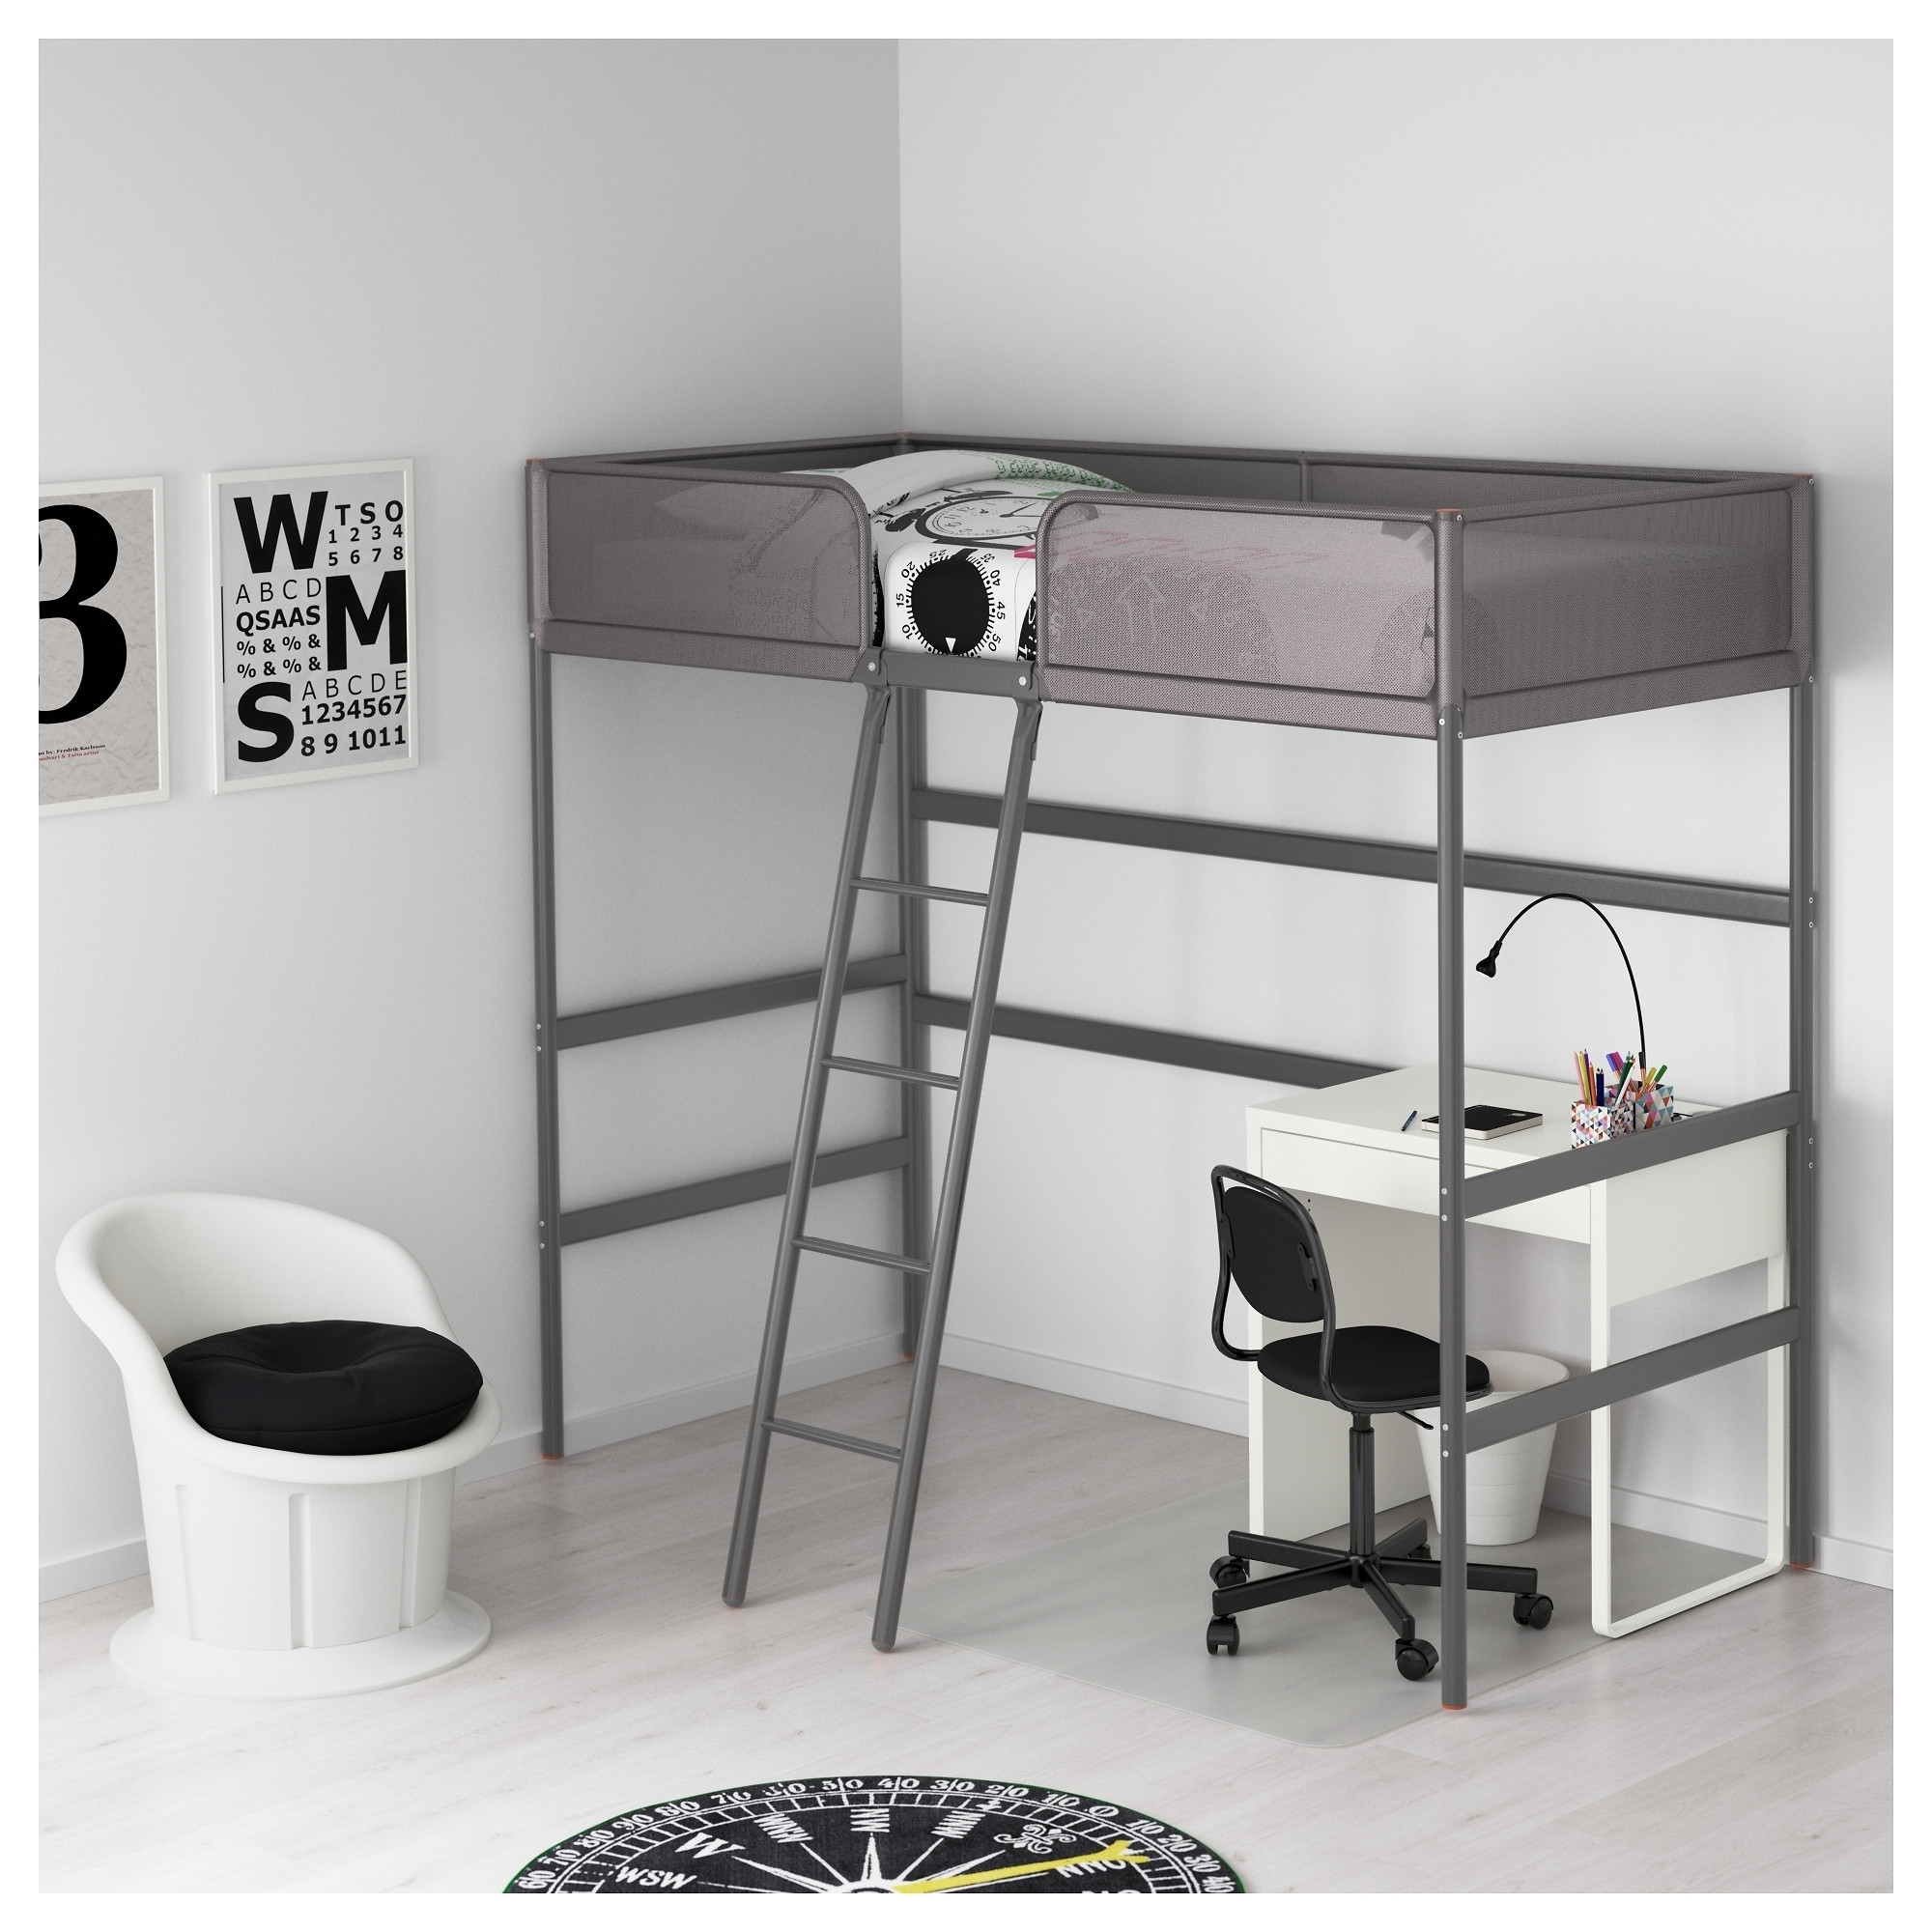 Ikea Loft Beds You Ll Love In 2020 Visualhunt